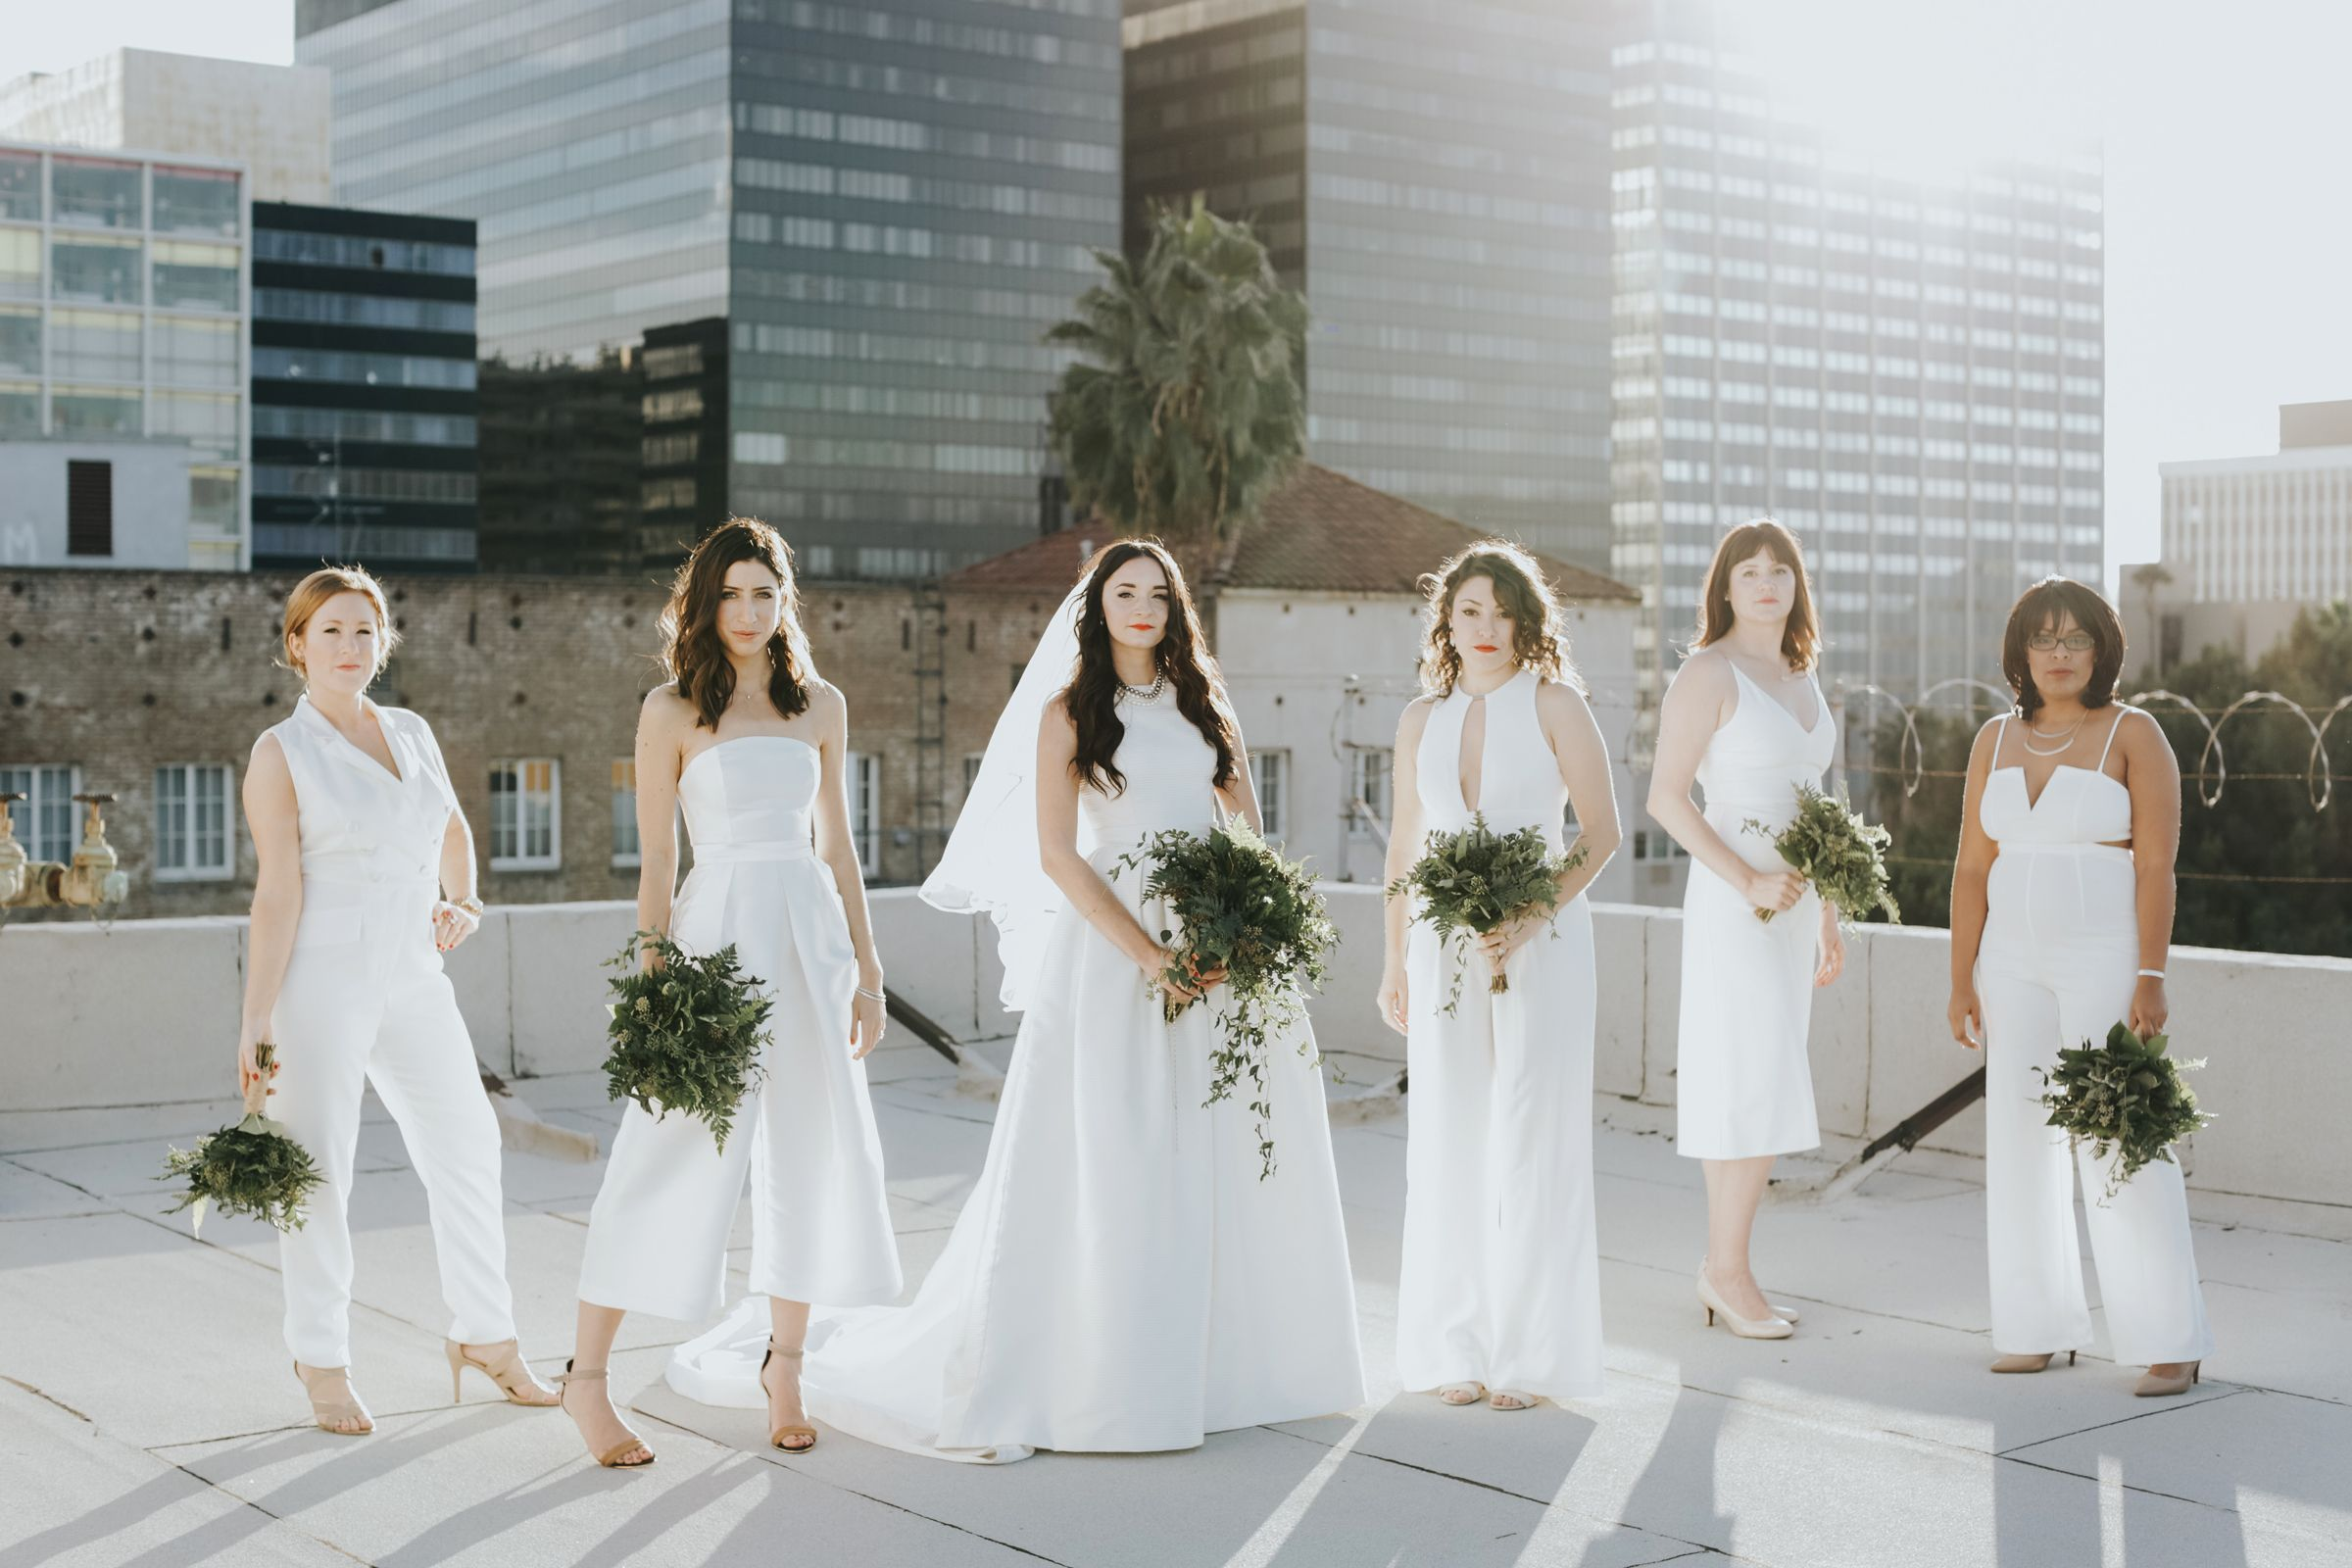 20 Wedding Parties That Prove Bridesmaids' Jumpsuits Are Just as Beautiful as Dresses #bridesmaidjumpsuits 20 Wedding Parties That Prove Bridesmaids' Jumpsuits Are Just as Beautiful as Dresses #bridesmaidjumpsuits